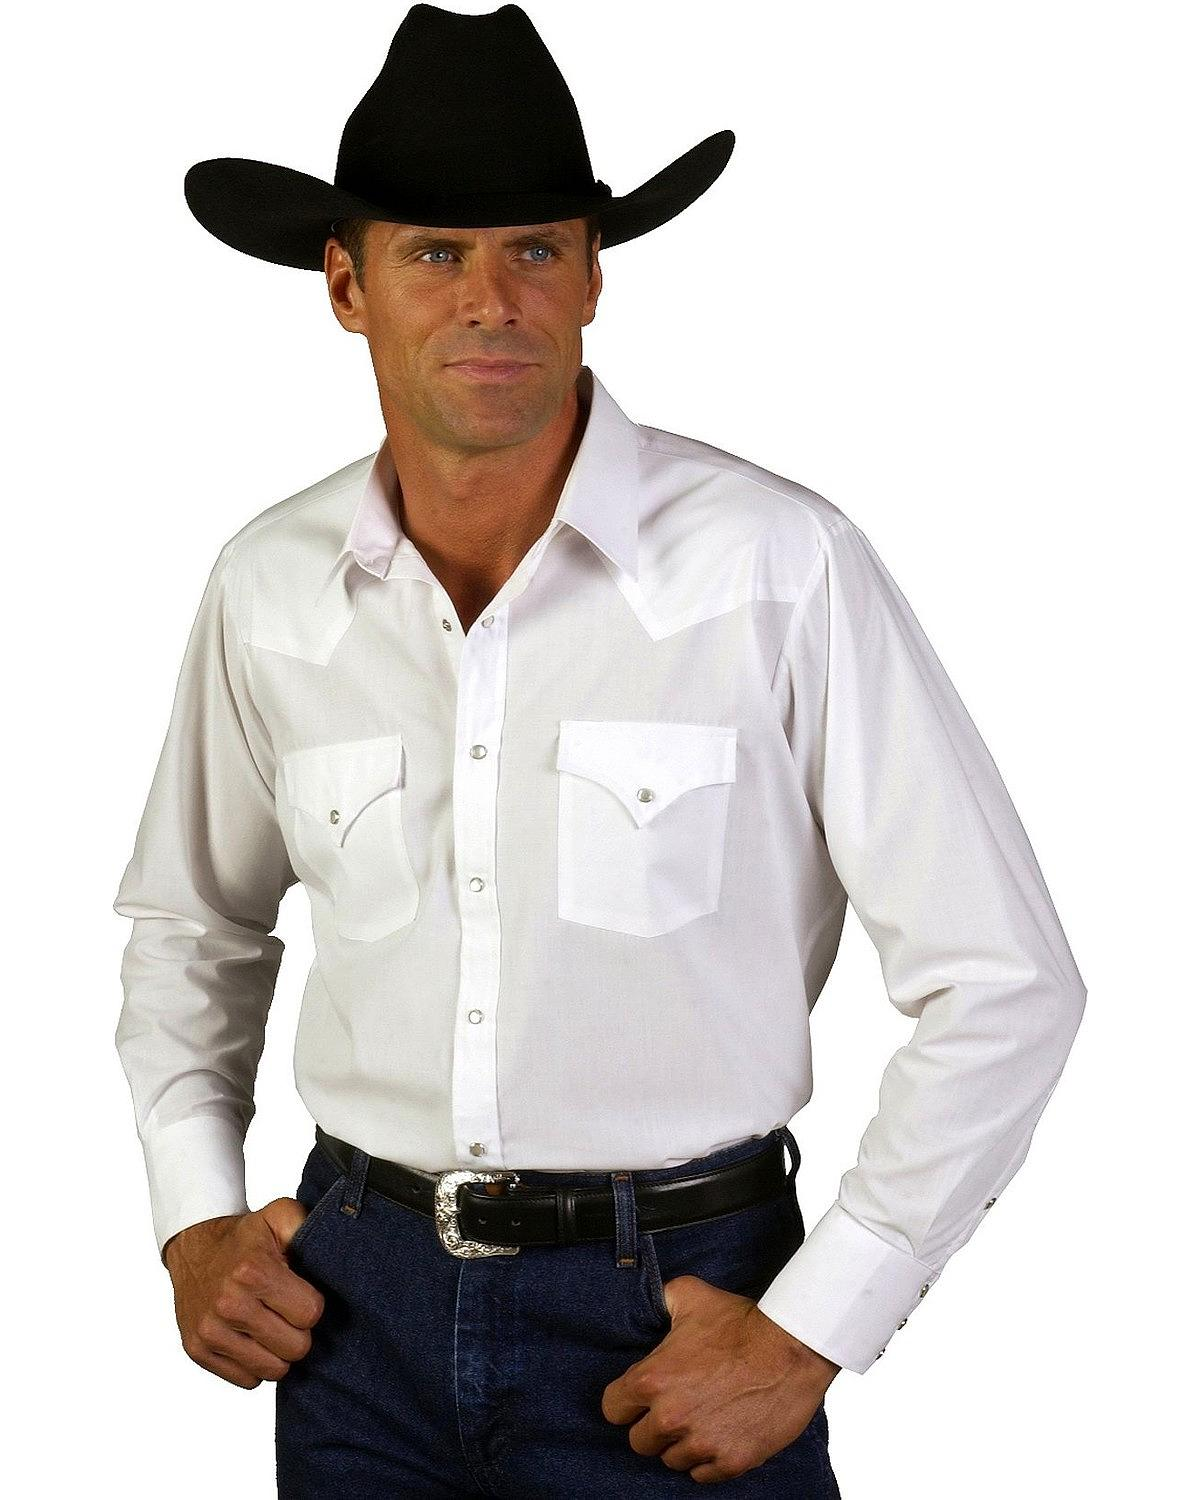 Shop Davis' for a great selection of men's western shirts including a large variety of big and tall western shirts at low prices. Choose your favorite western shirts from the brands you trust like Wrangler, Cinch, Ariat, Roper, and Ely Cattleman. Free Shipping available.